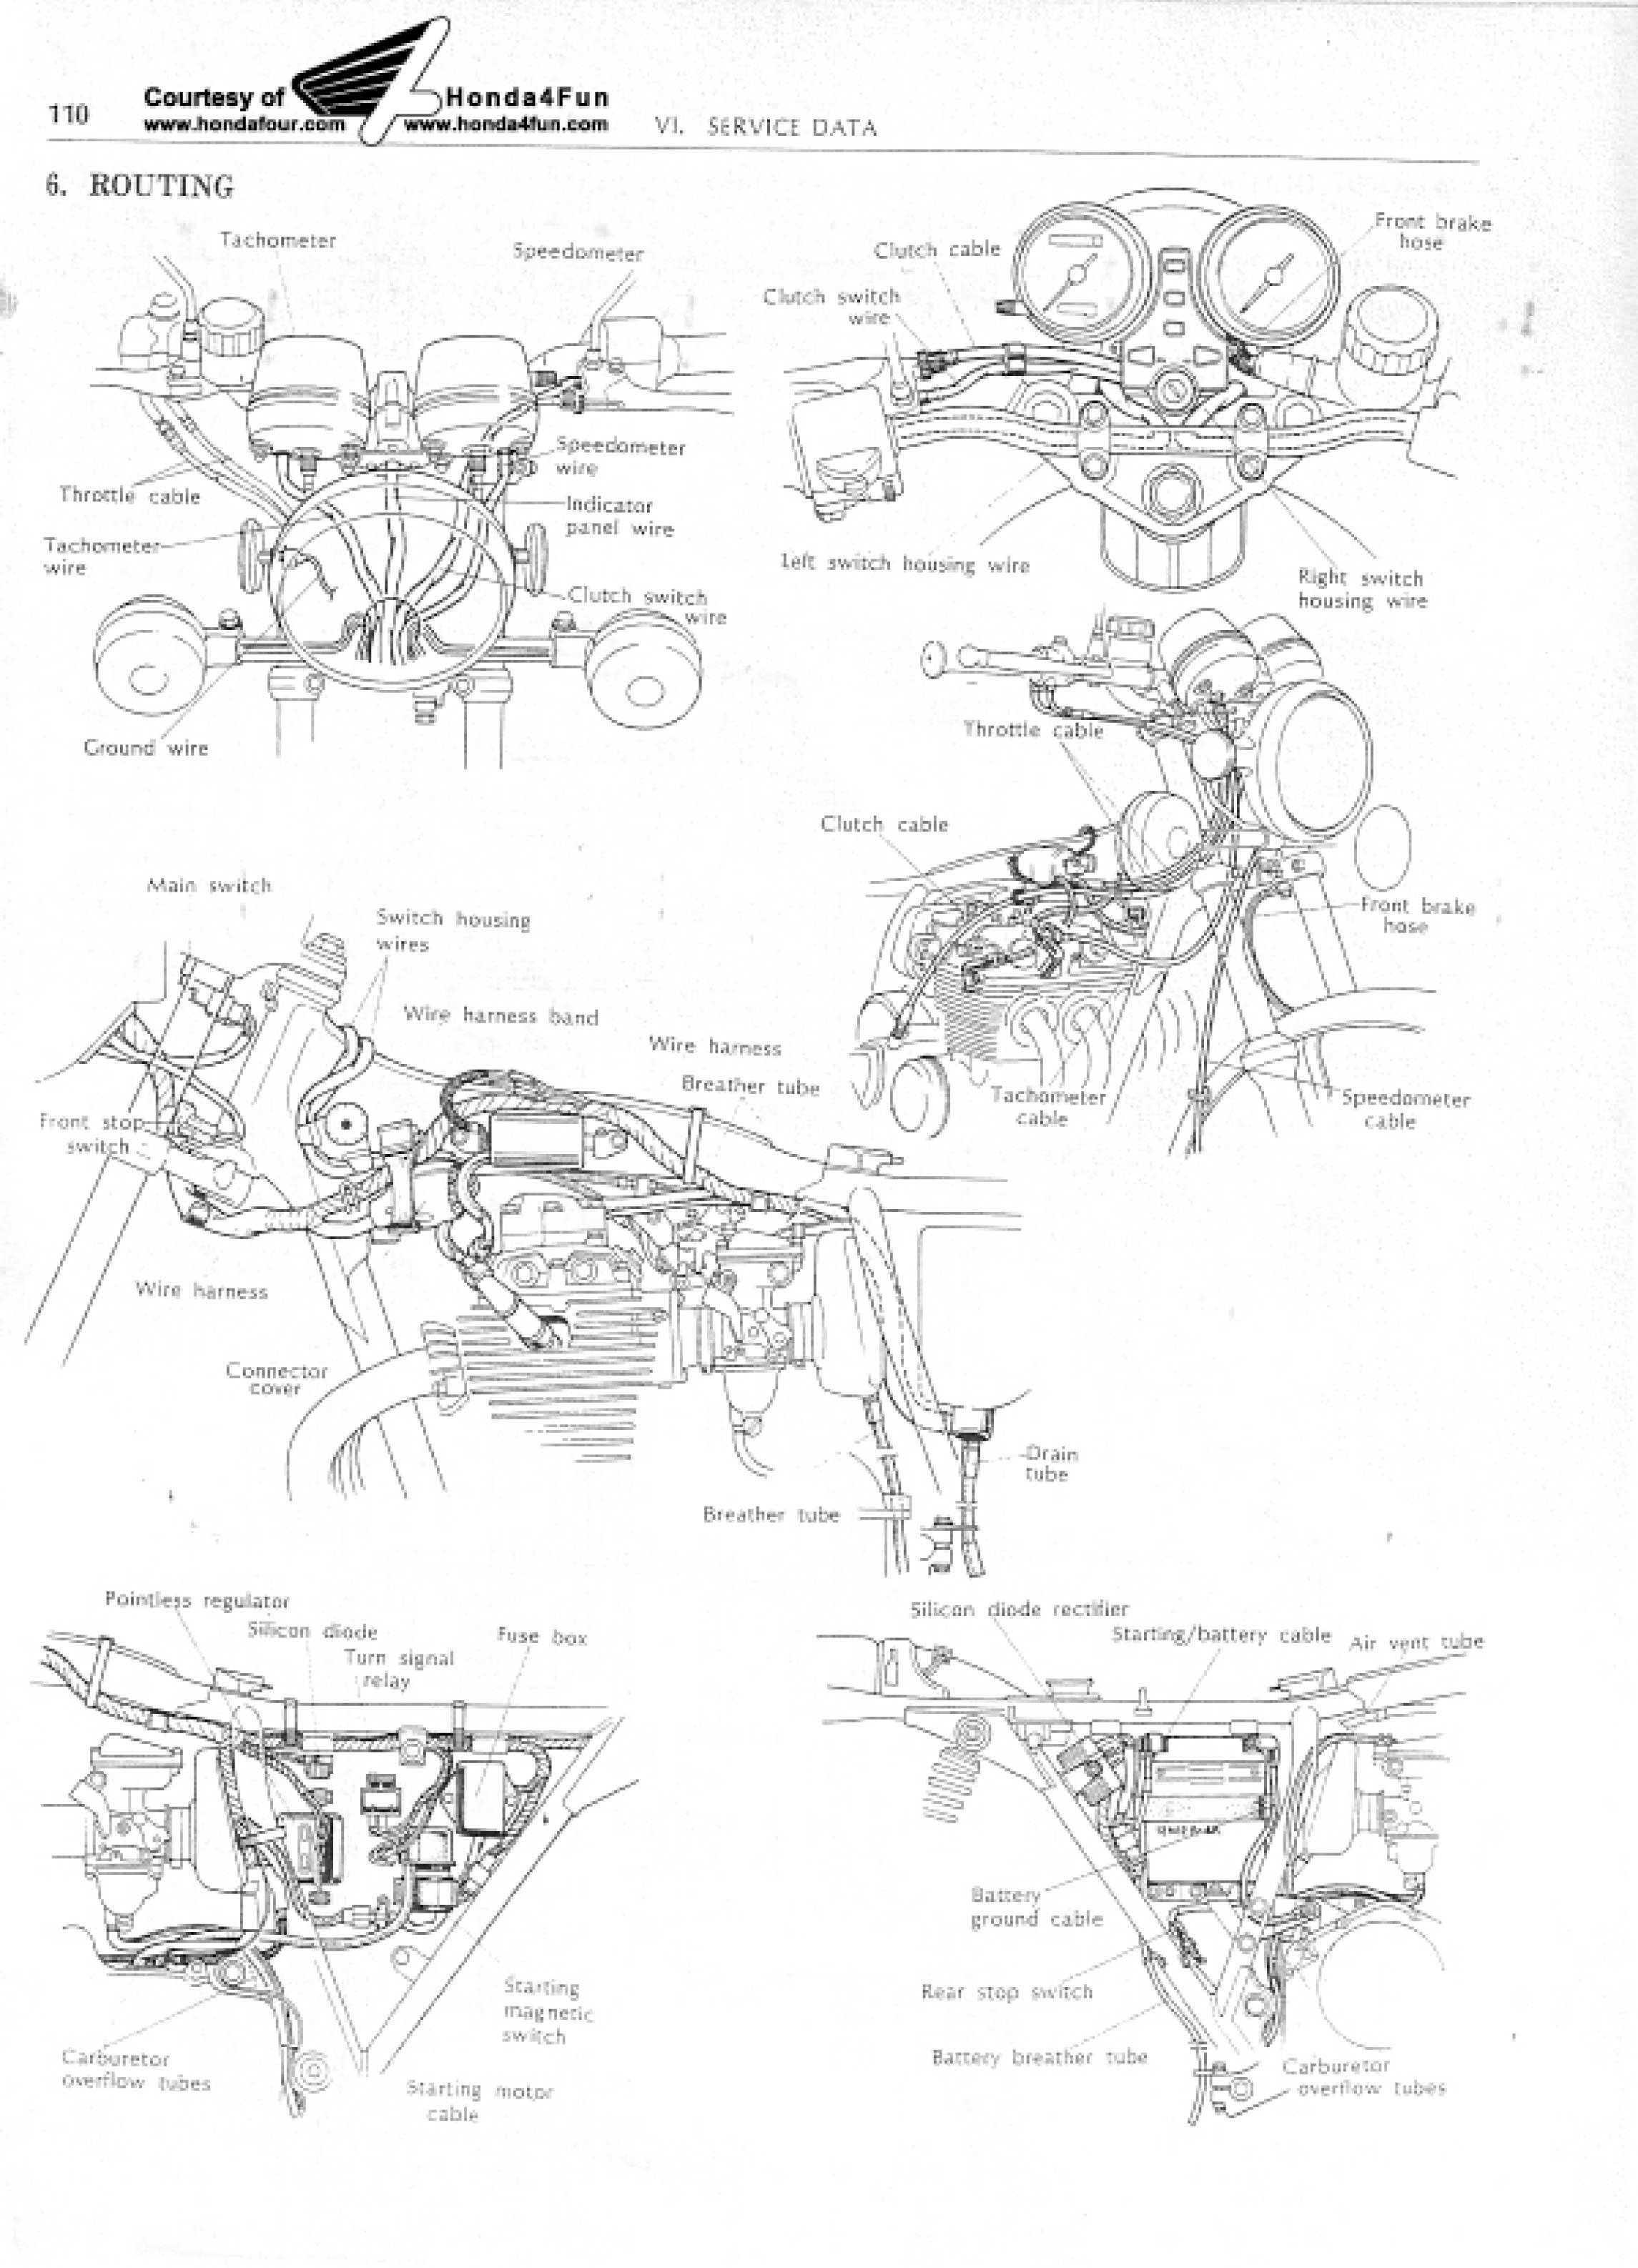 1973 Cb750 Chopper Wiring Diagram Search For Diagrams 49cc Mini And Schematics Honda Cb350 Four 31 Images Bobber